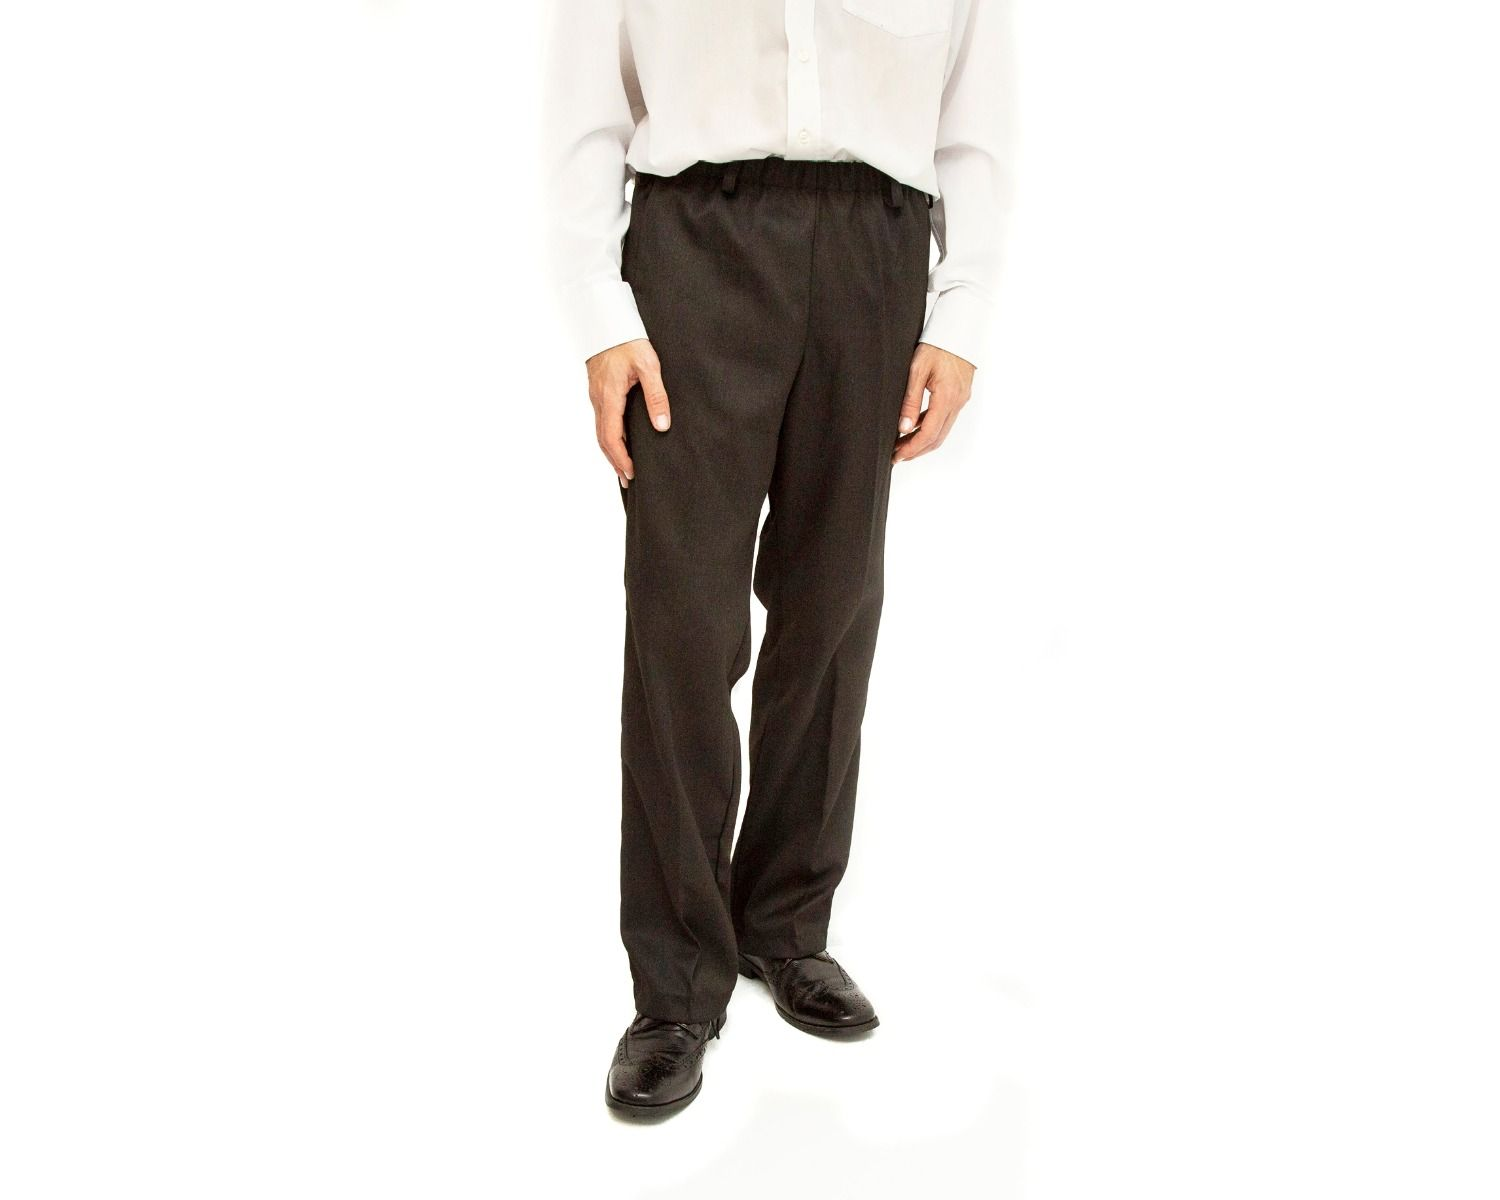 Made To Measure Elasticated Waist Smart Trousers 1